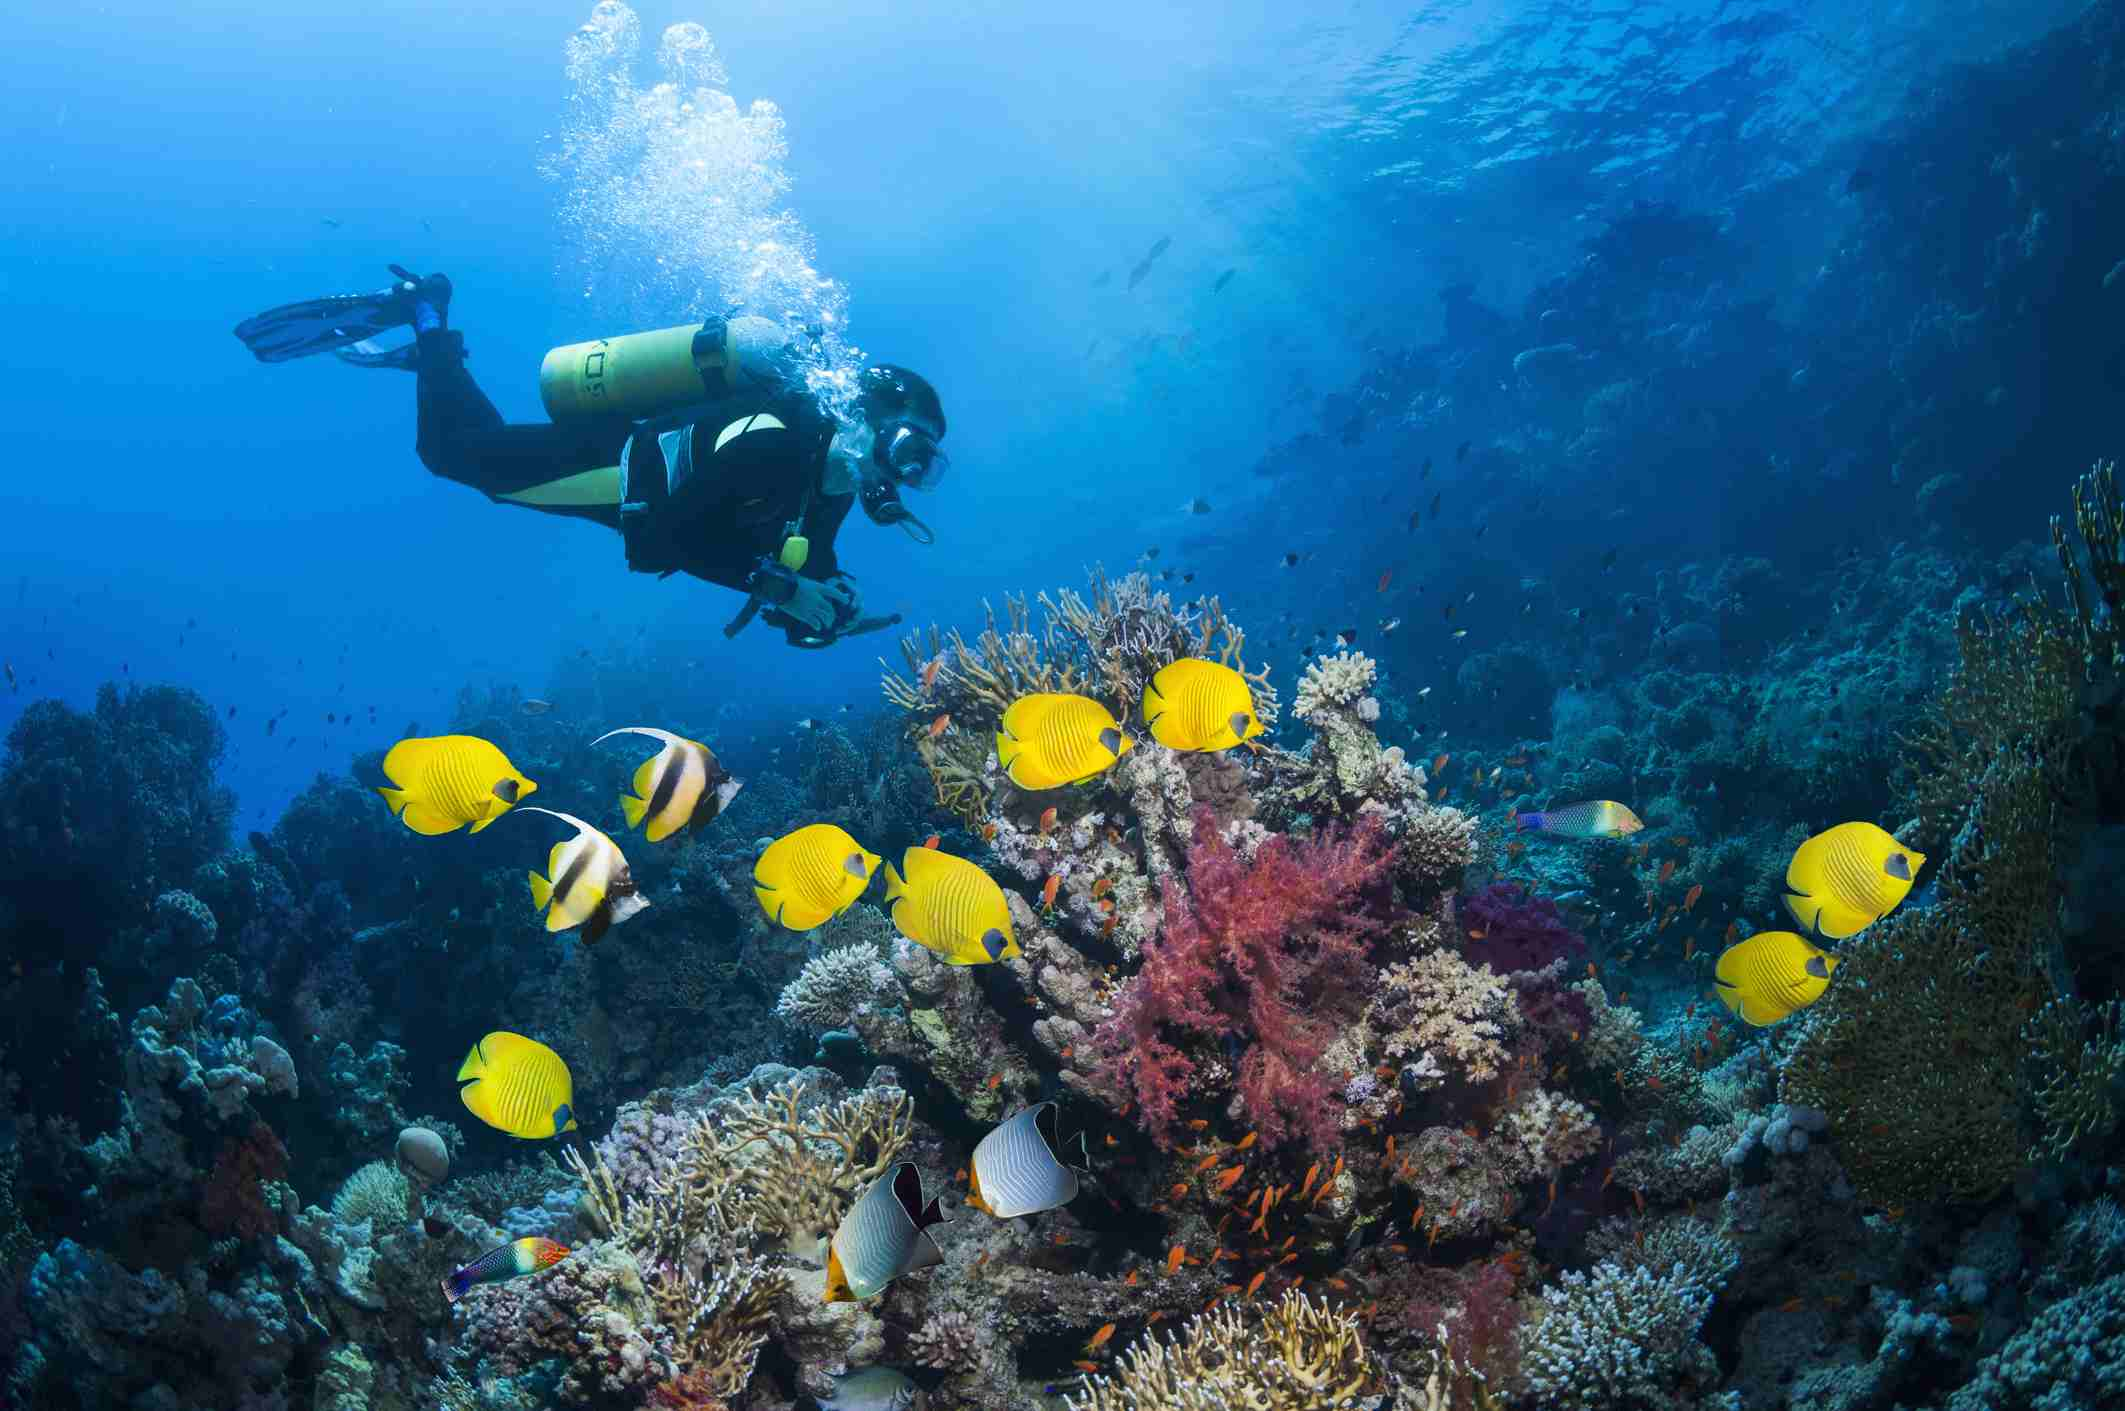 Scuba diver underwater with coral reef and brightly colored fish